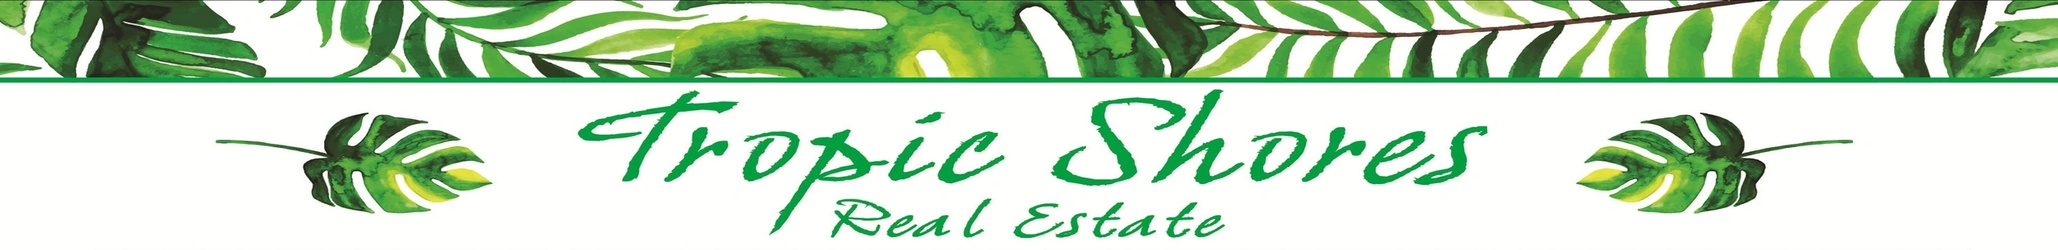 Tropic Shores Real Estate